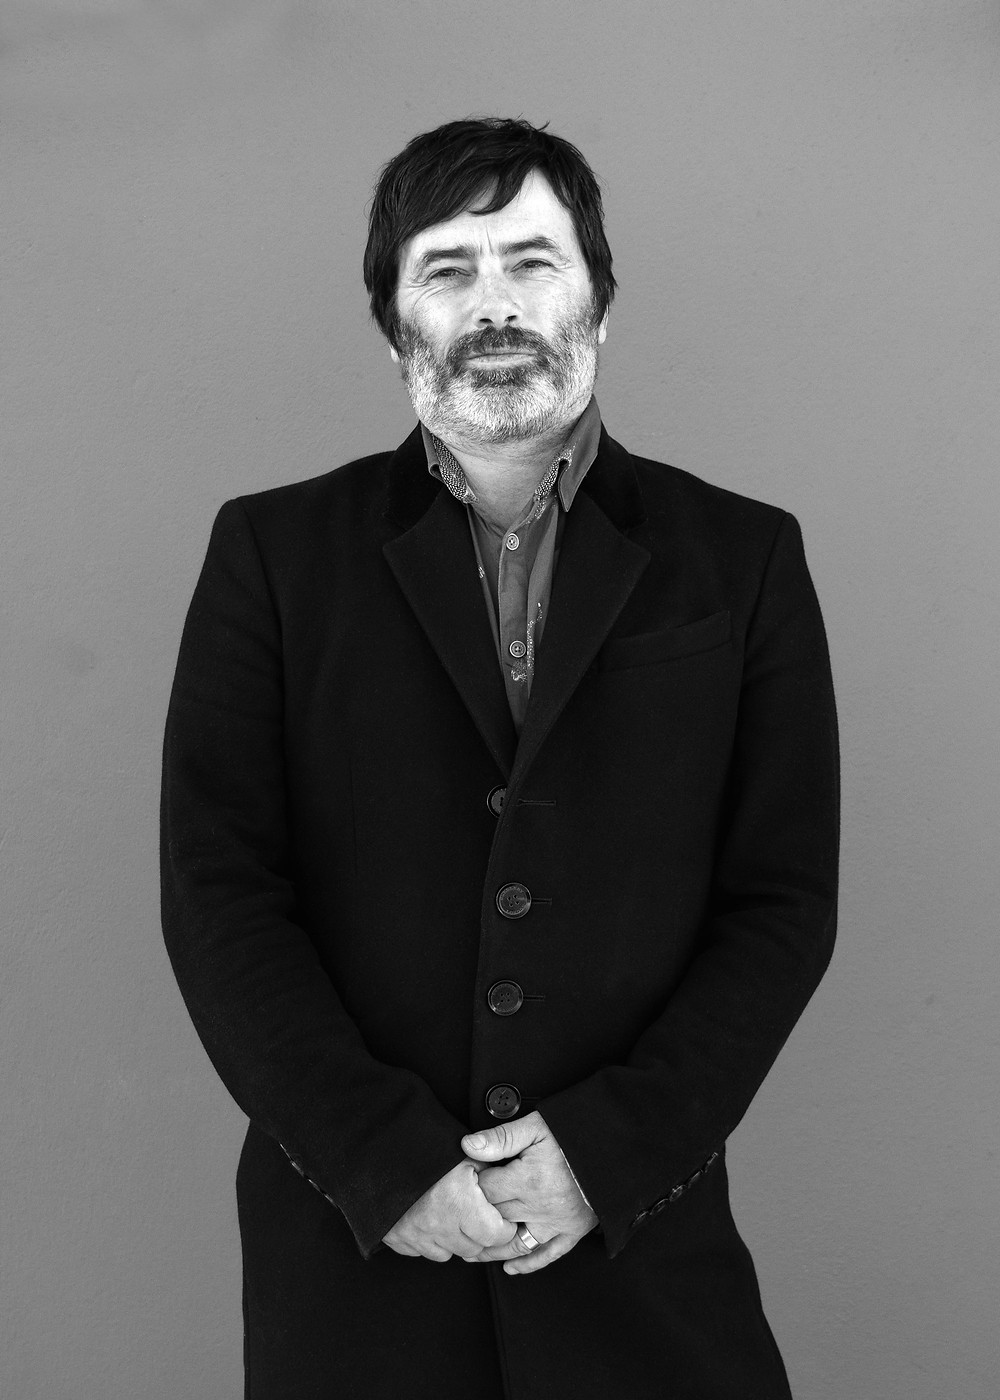 Portrait of Lawrie Dunster owner of Curve Pusher Vinyl Record Cutting Studios in Hastings